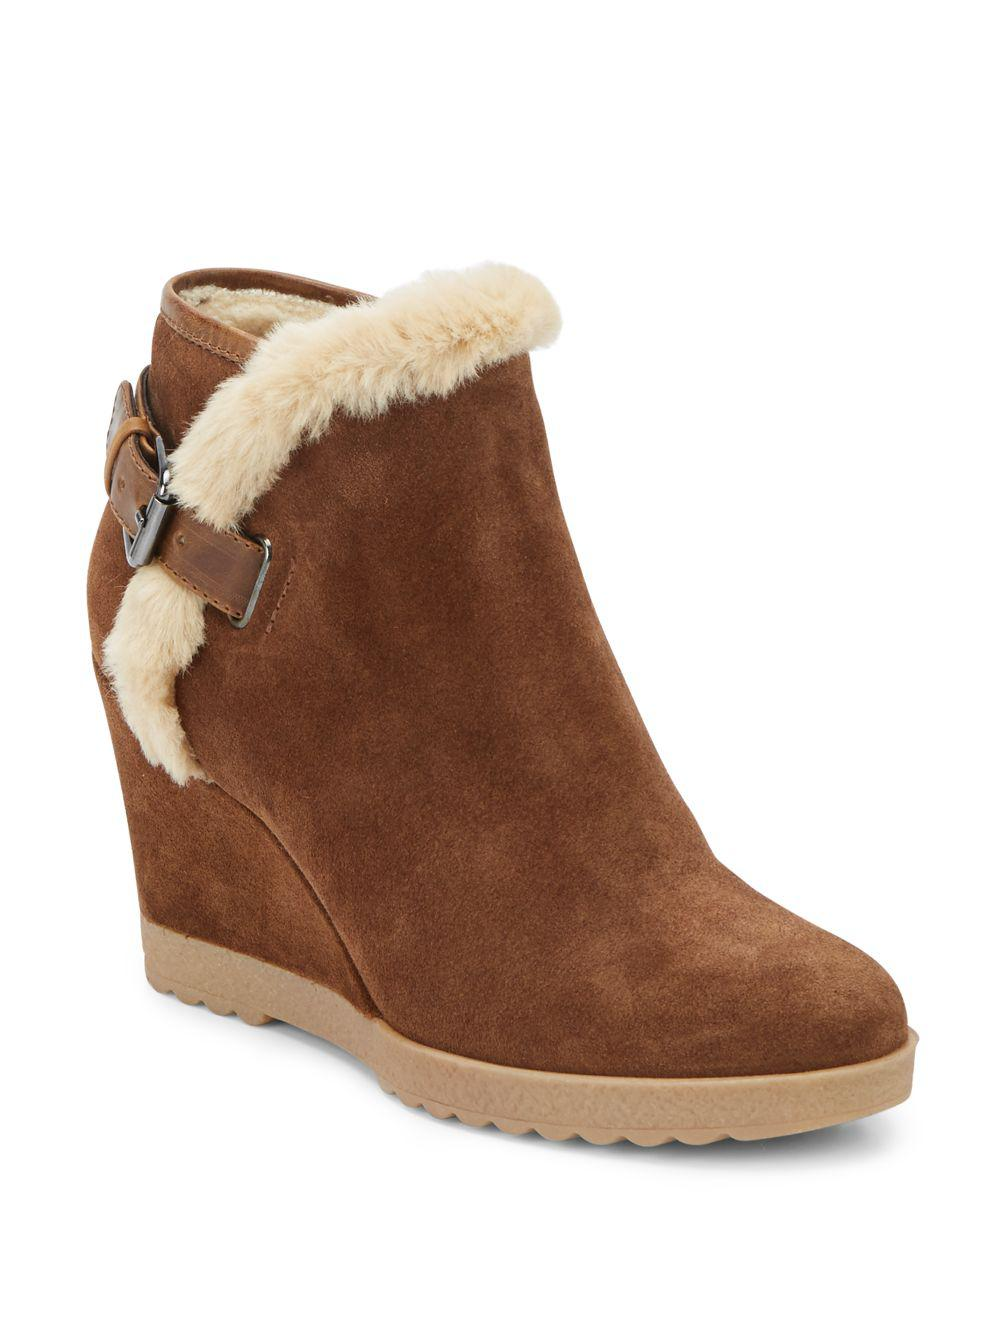 bd99d6483 Lyst - Aquatalia Crista Faux Fur-lined Suede Wedge Booties